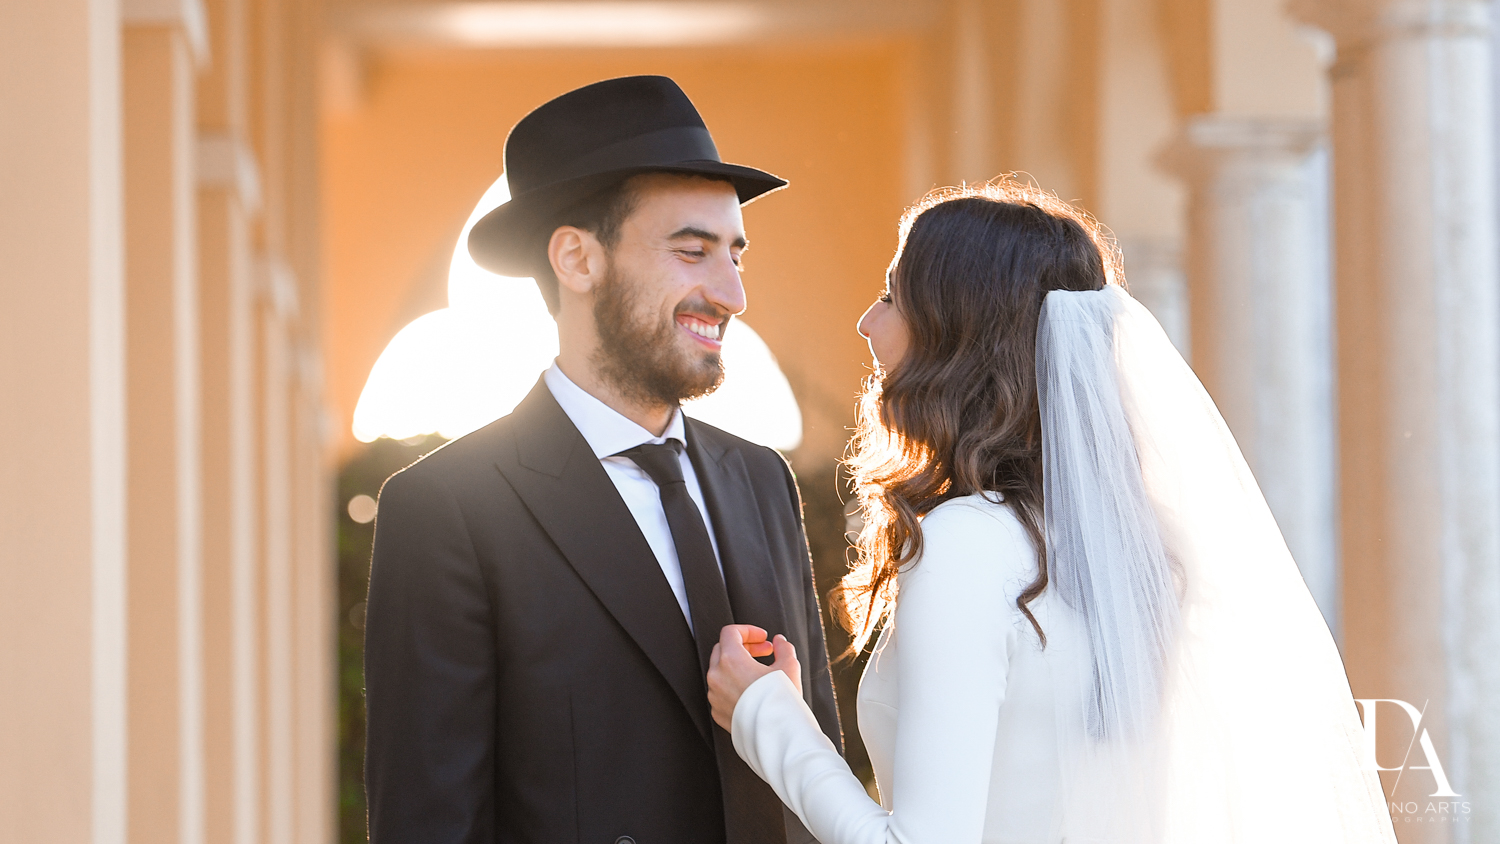 bride and groom portraits at Hasidic Jewish Wedding at The Addison in Boca Raton by Domino Arts Photography